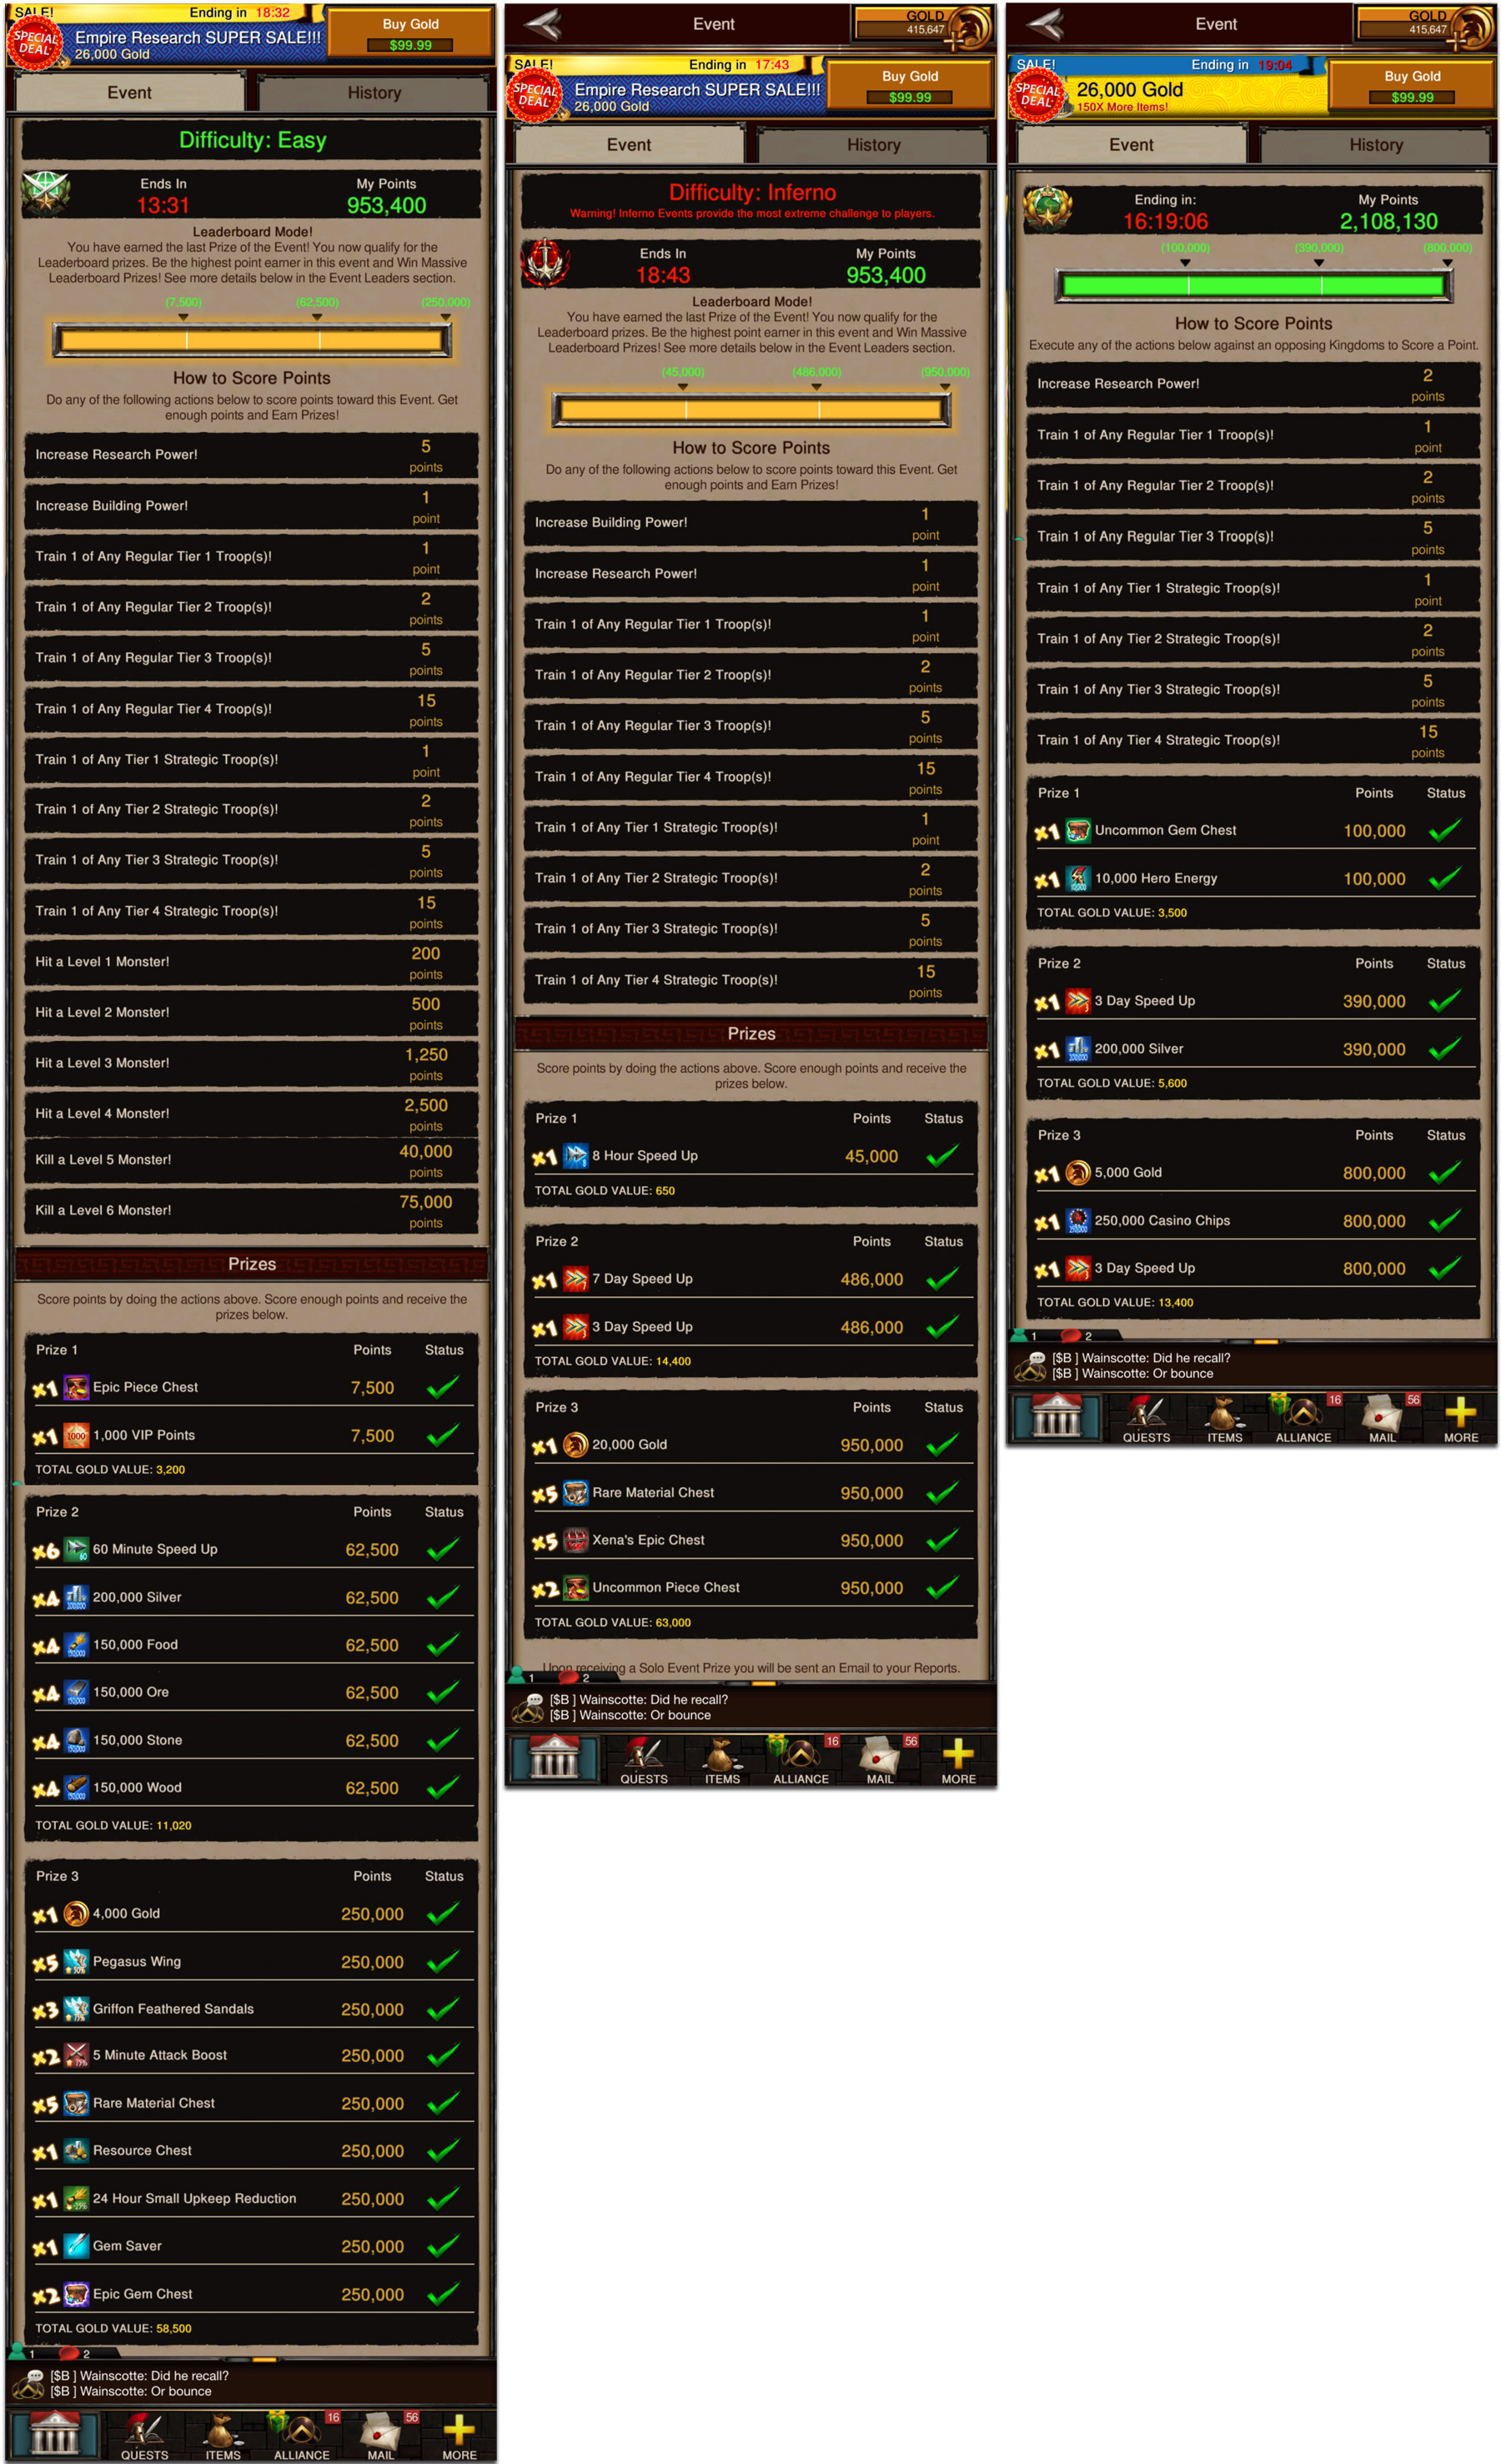 Game of War Events